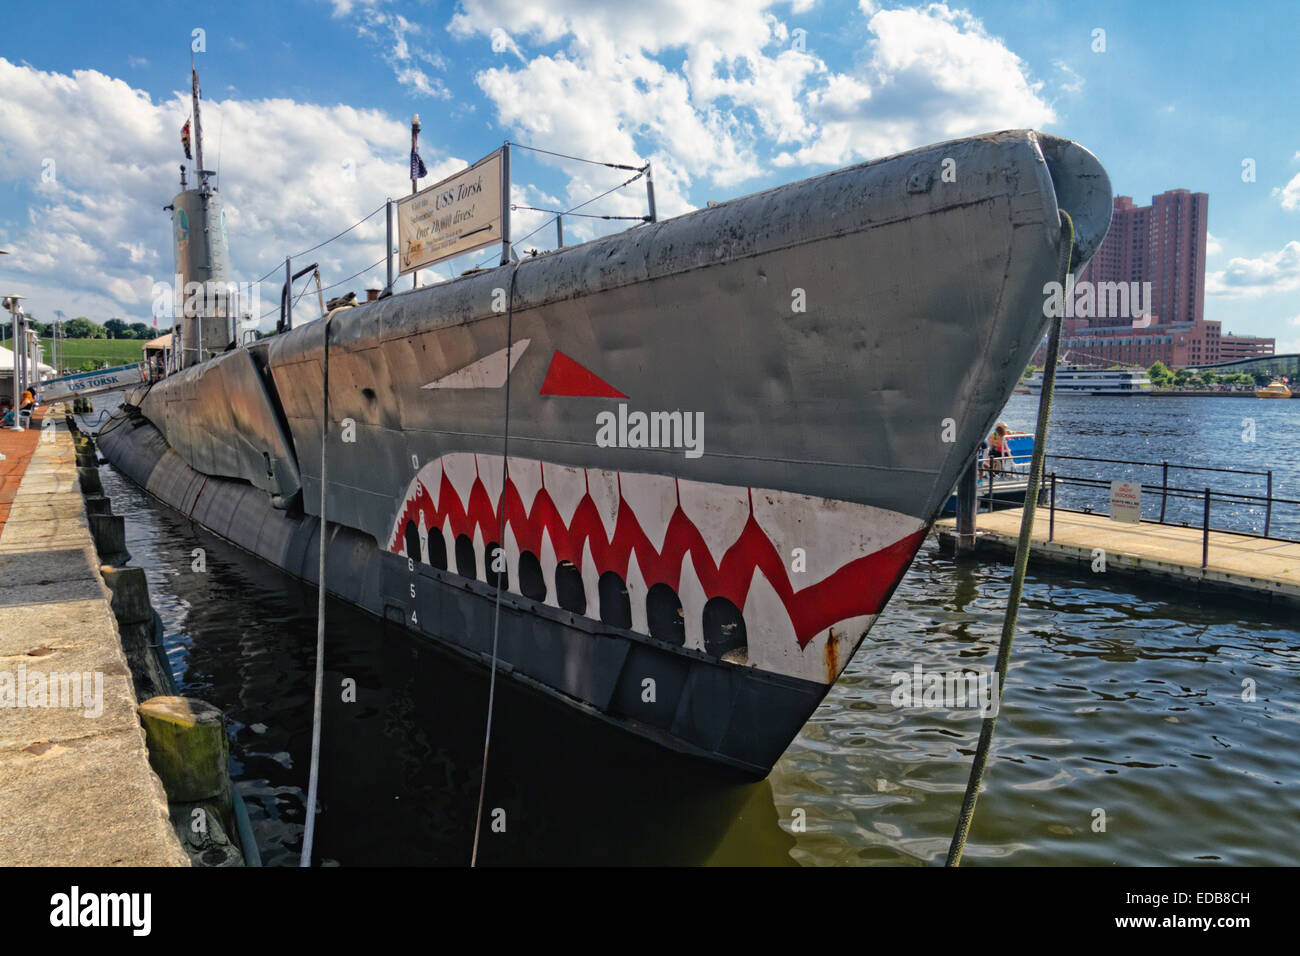 Low Angle View of a Submarine at a Pier, USS Torsk,Submarine Memorial, Inner Harbor, Baltimore, Maryland, USA - Stock Image